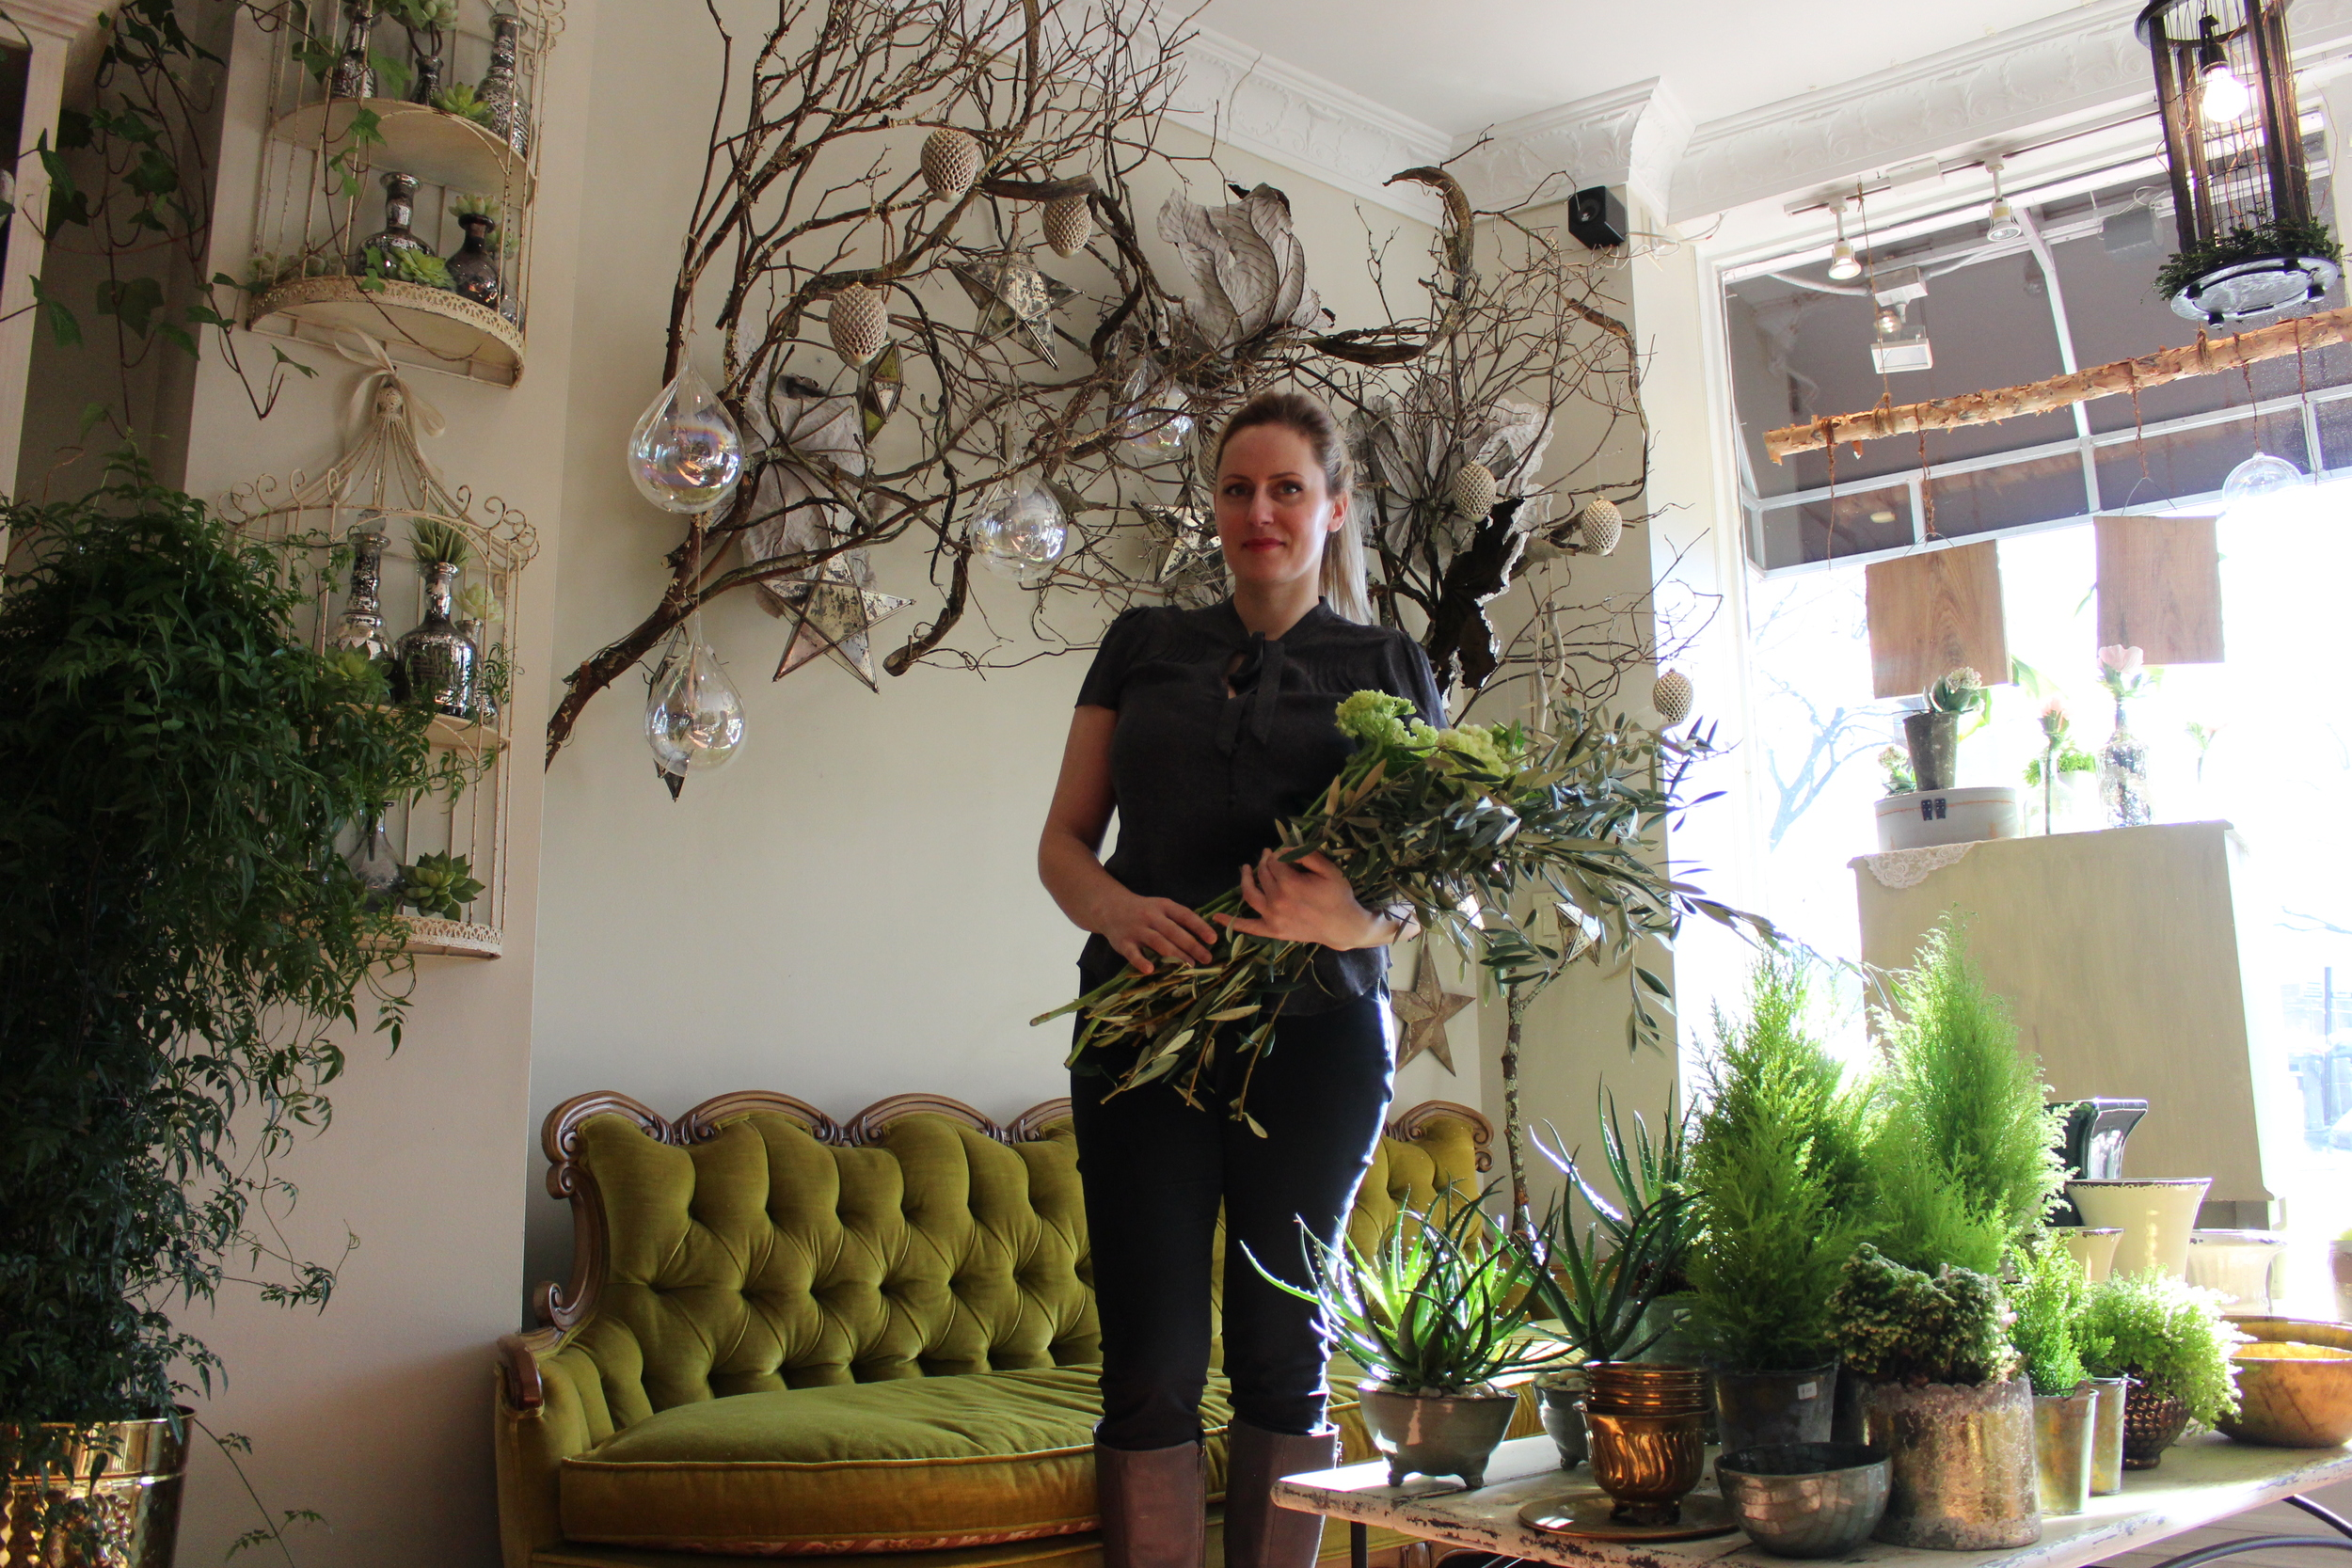 Akvile Zilinskis, owner of Floras Avenue in Huntington, provides and organic-vintage style to her European flower boutique, focusing on detail and stylish color schemes with each arrangement.